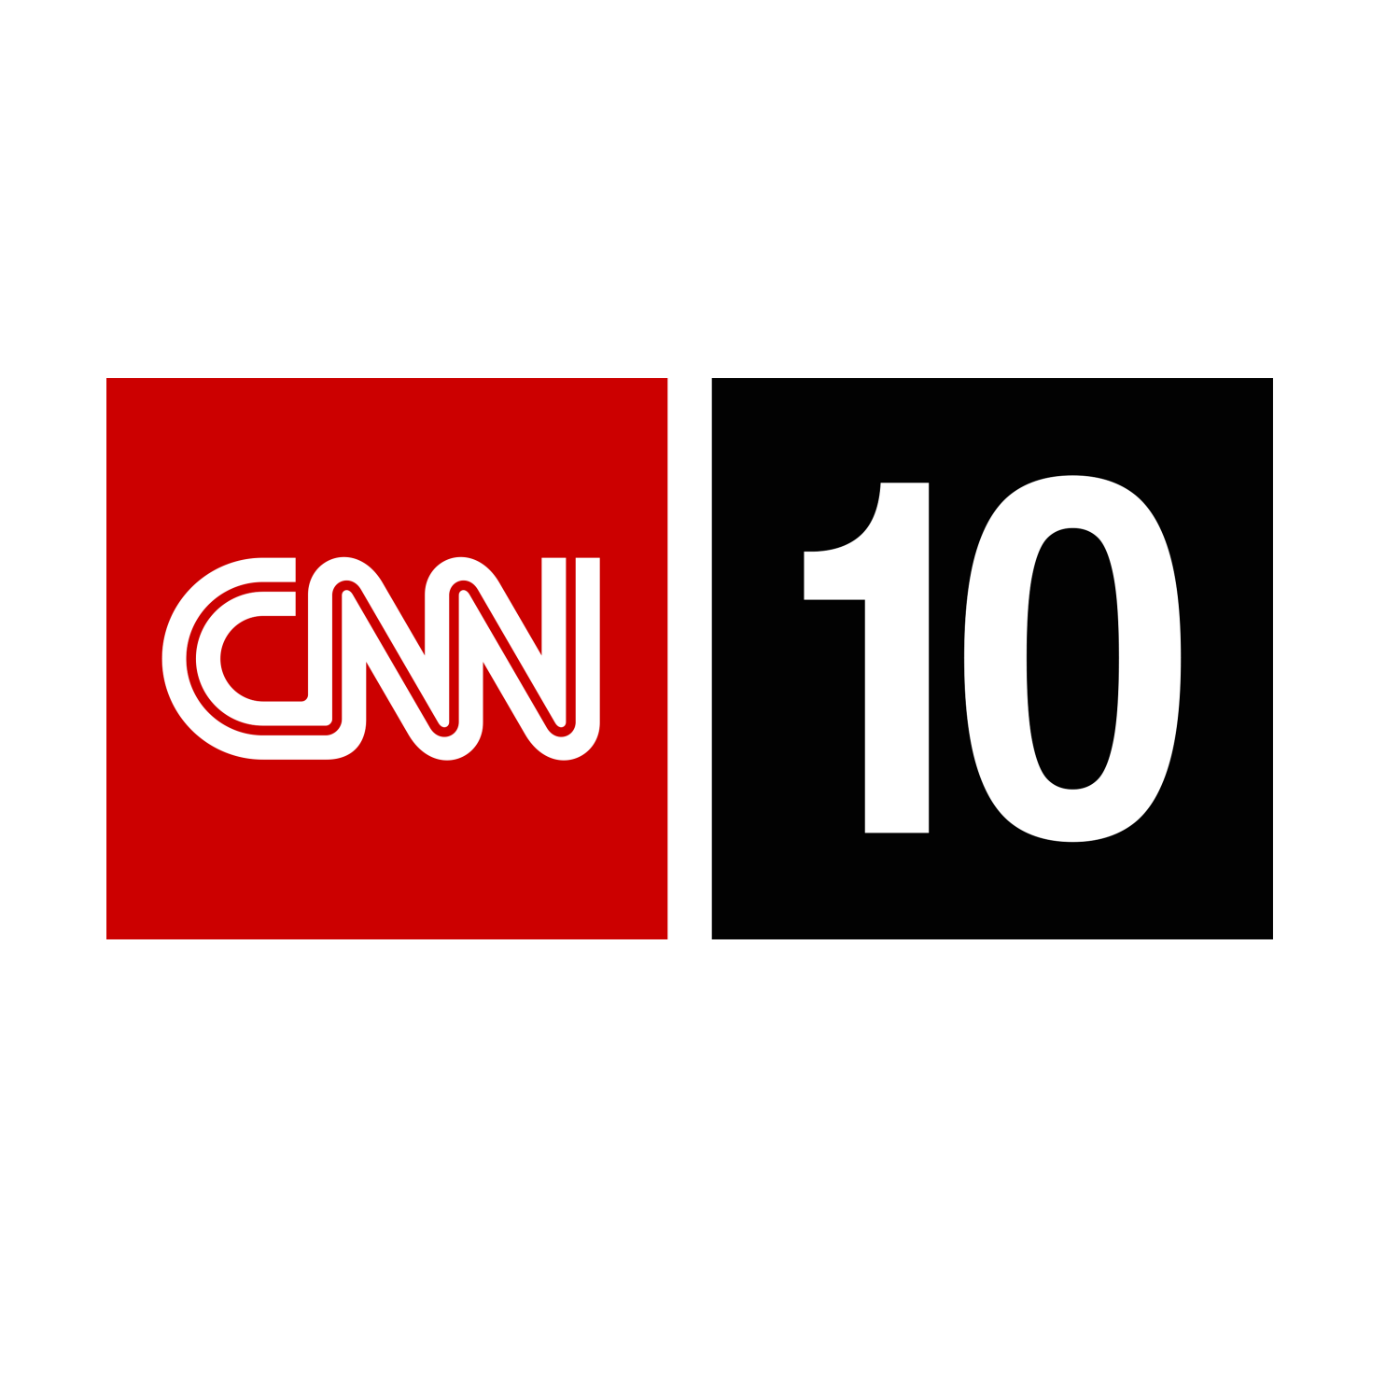 CNN Student News - March 13, 2013